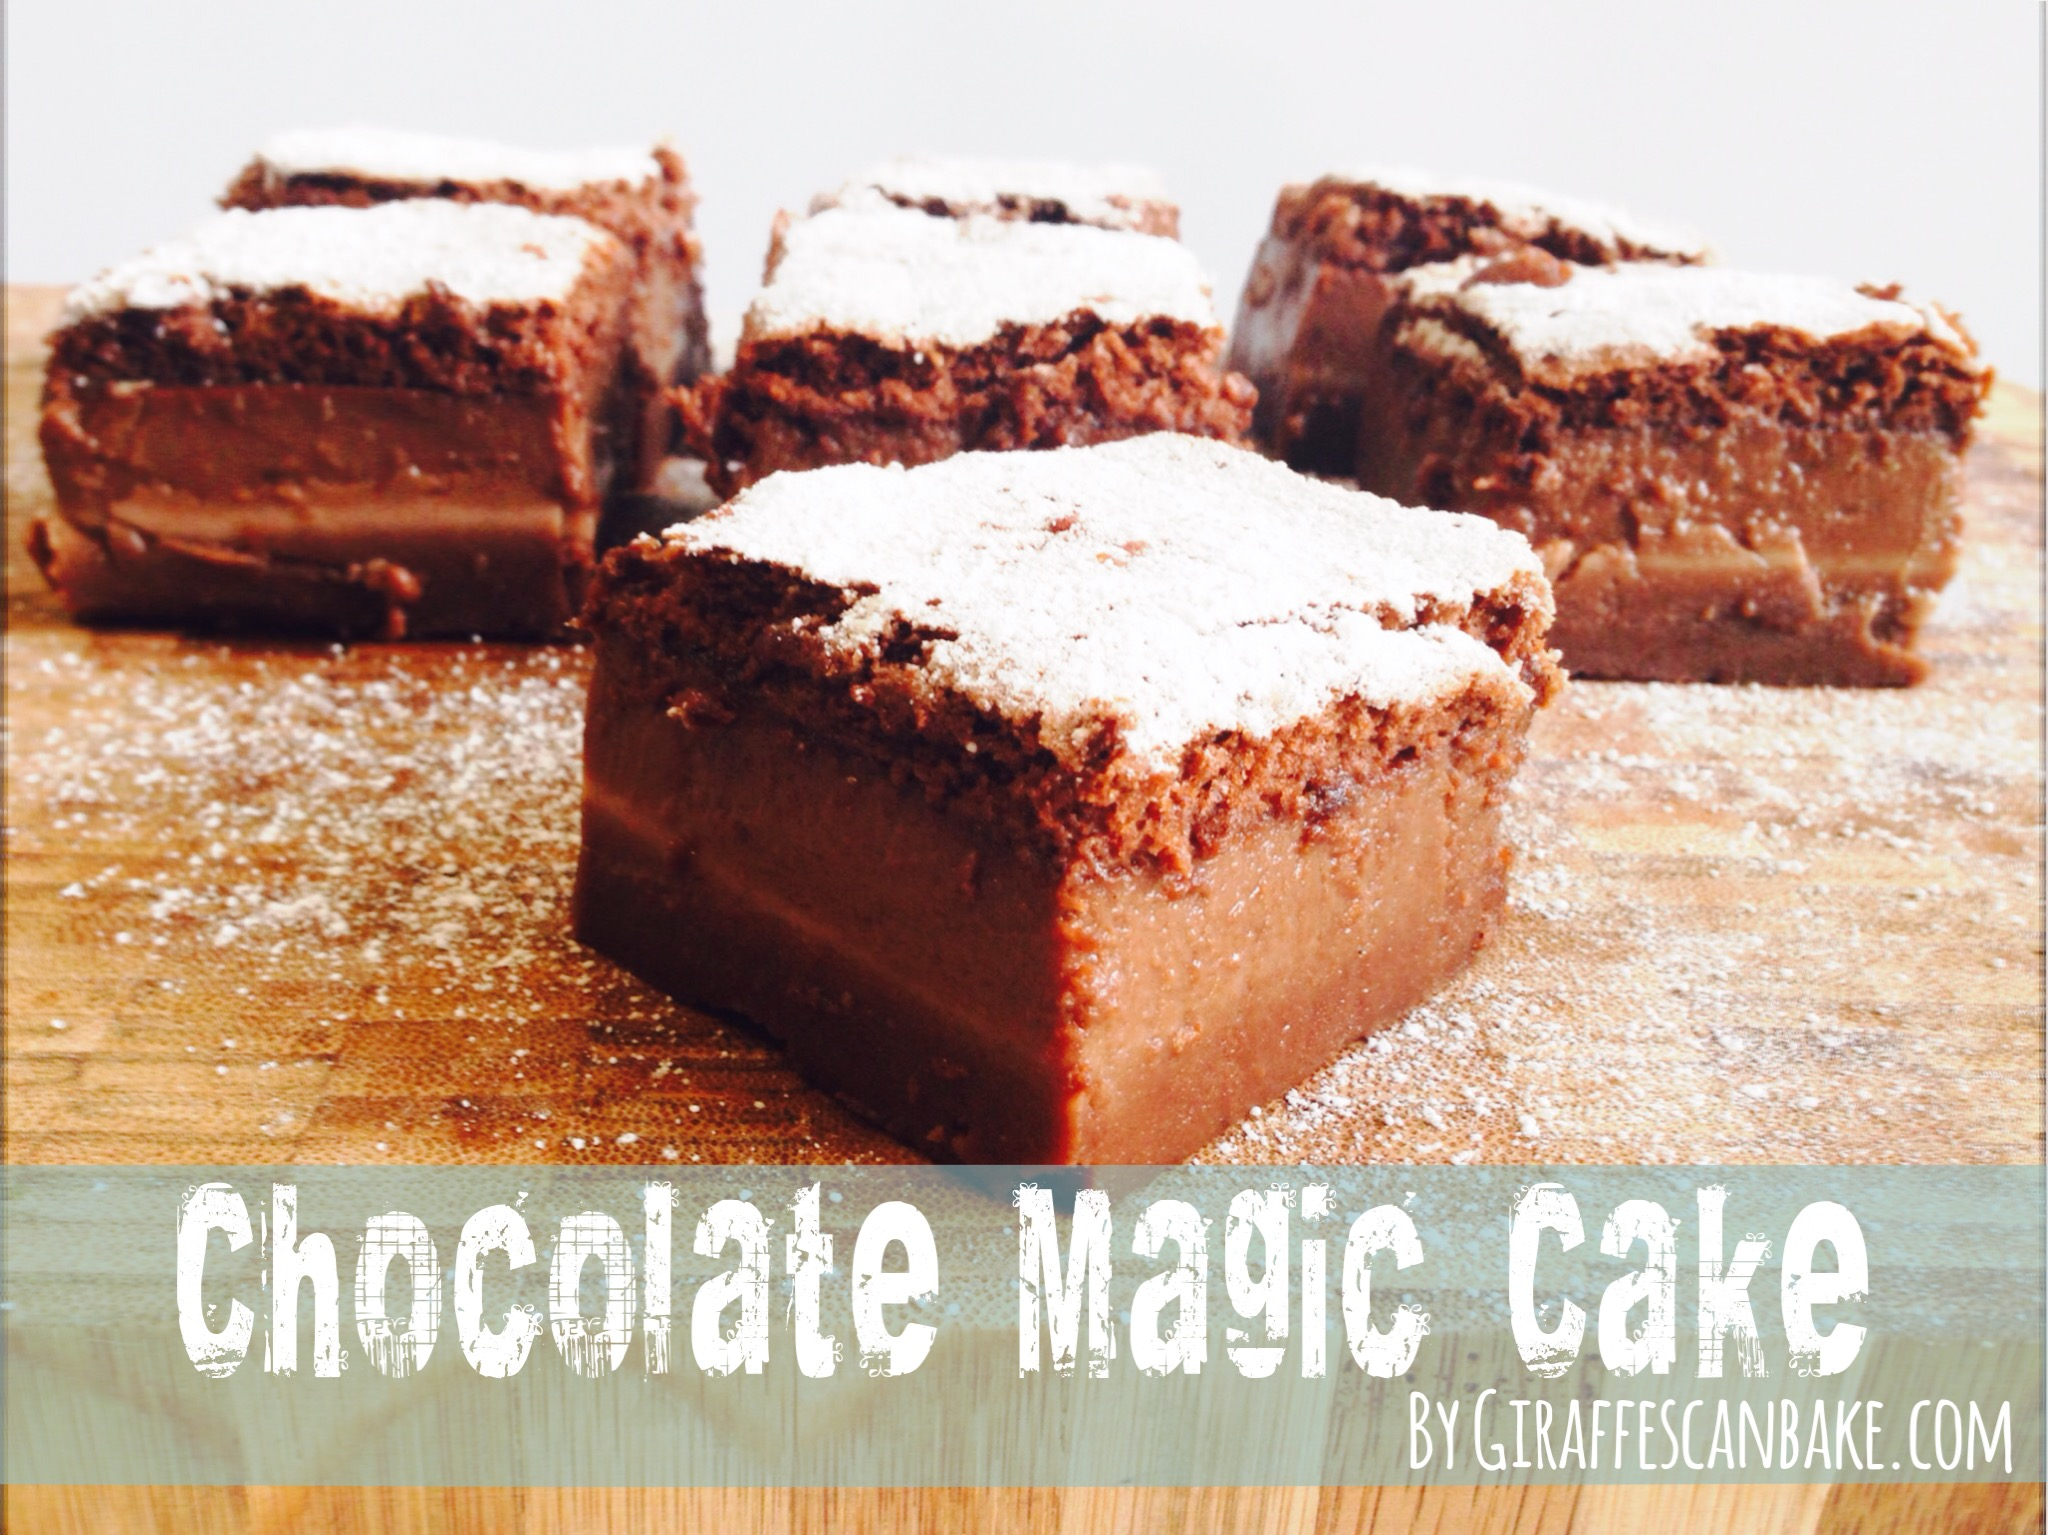 Chocolate Magic Cake A Tipsy Giraffe